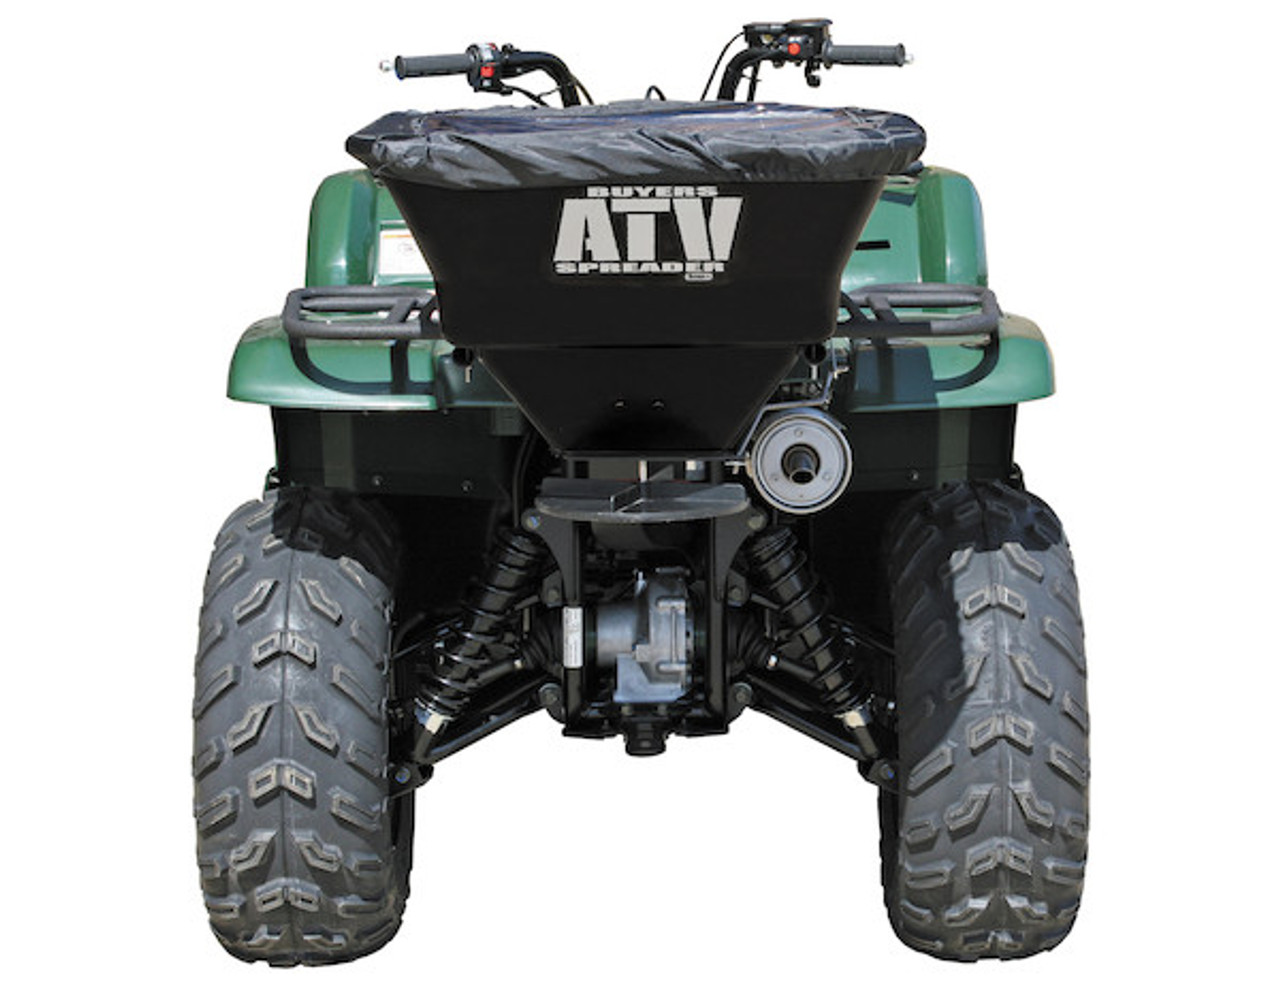 Buyers ATVS100 ATV All Purpose Spreader - Horizontal Mount 1